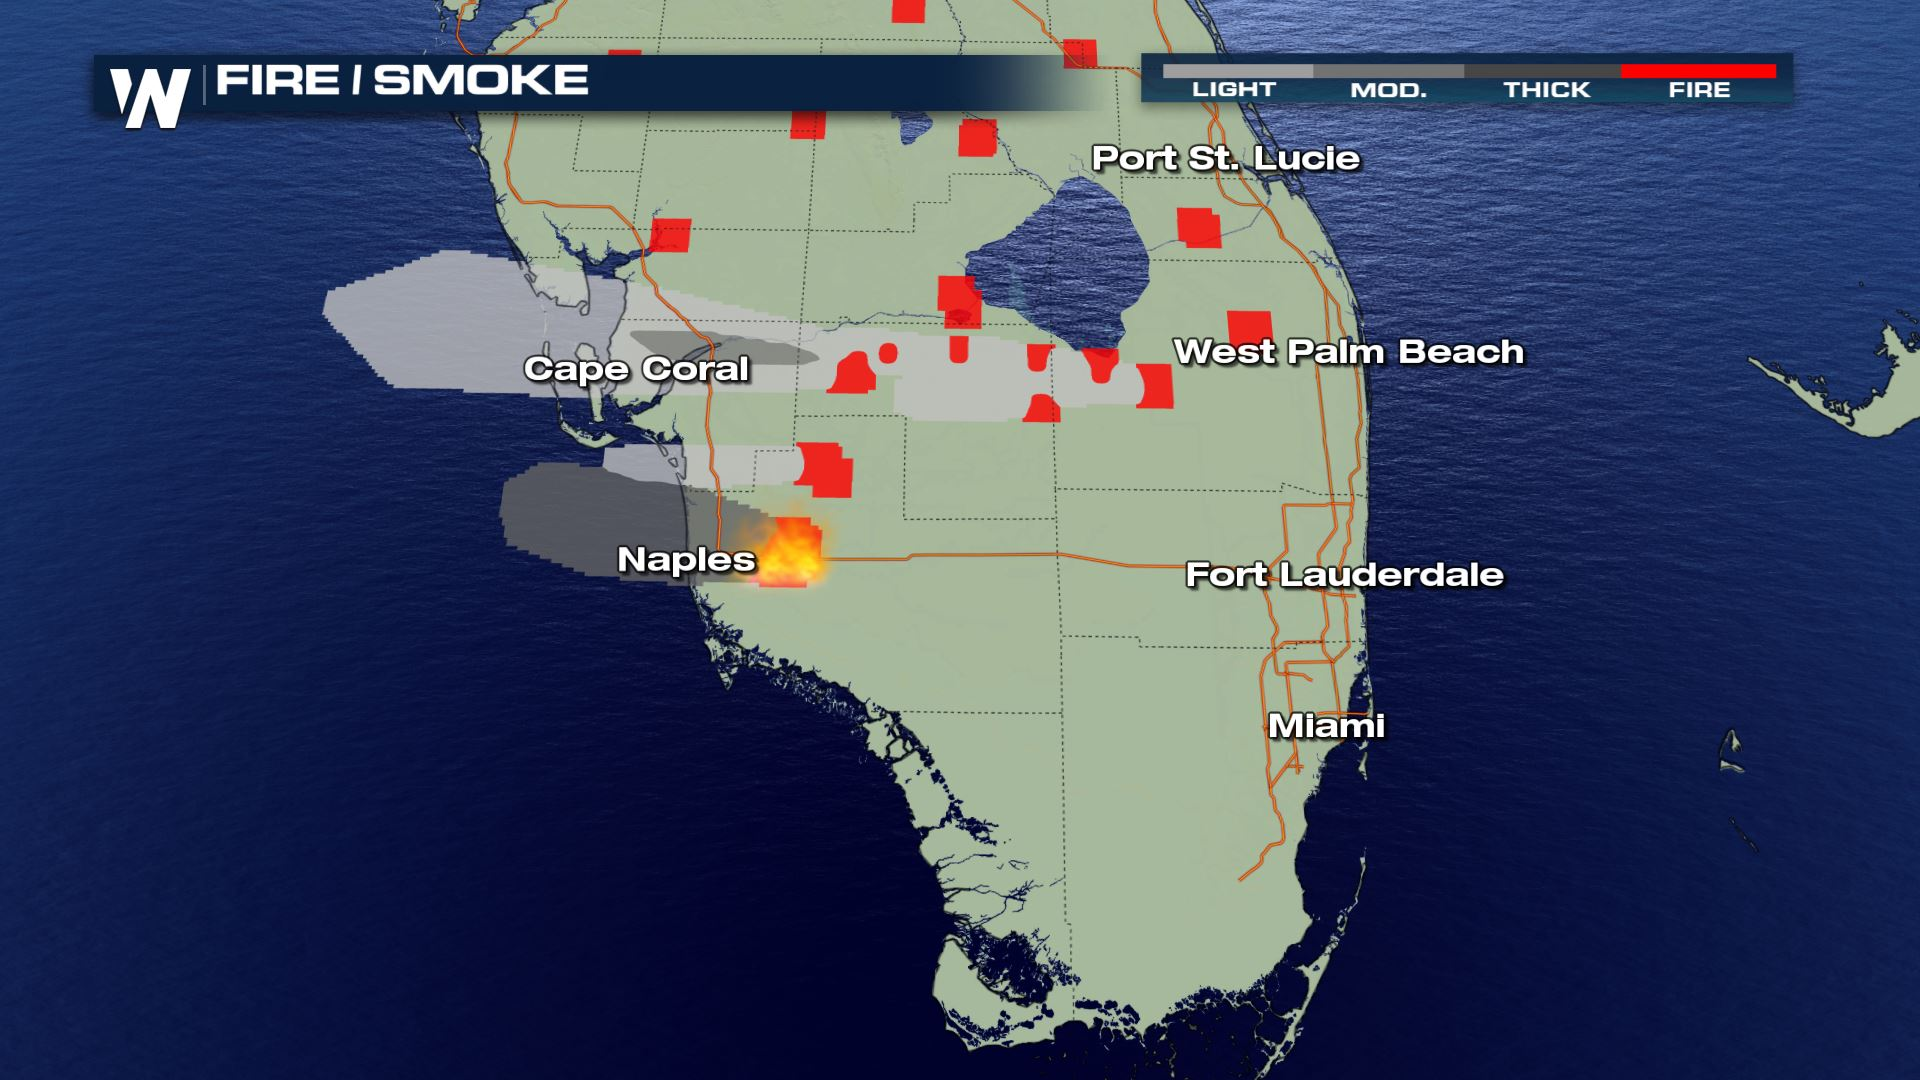 Wildfires Burning in Southwest Florida